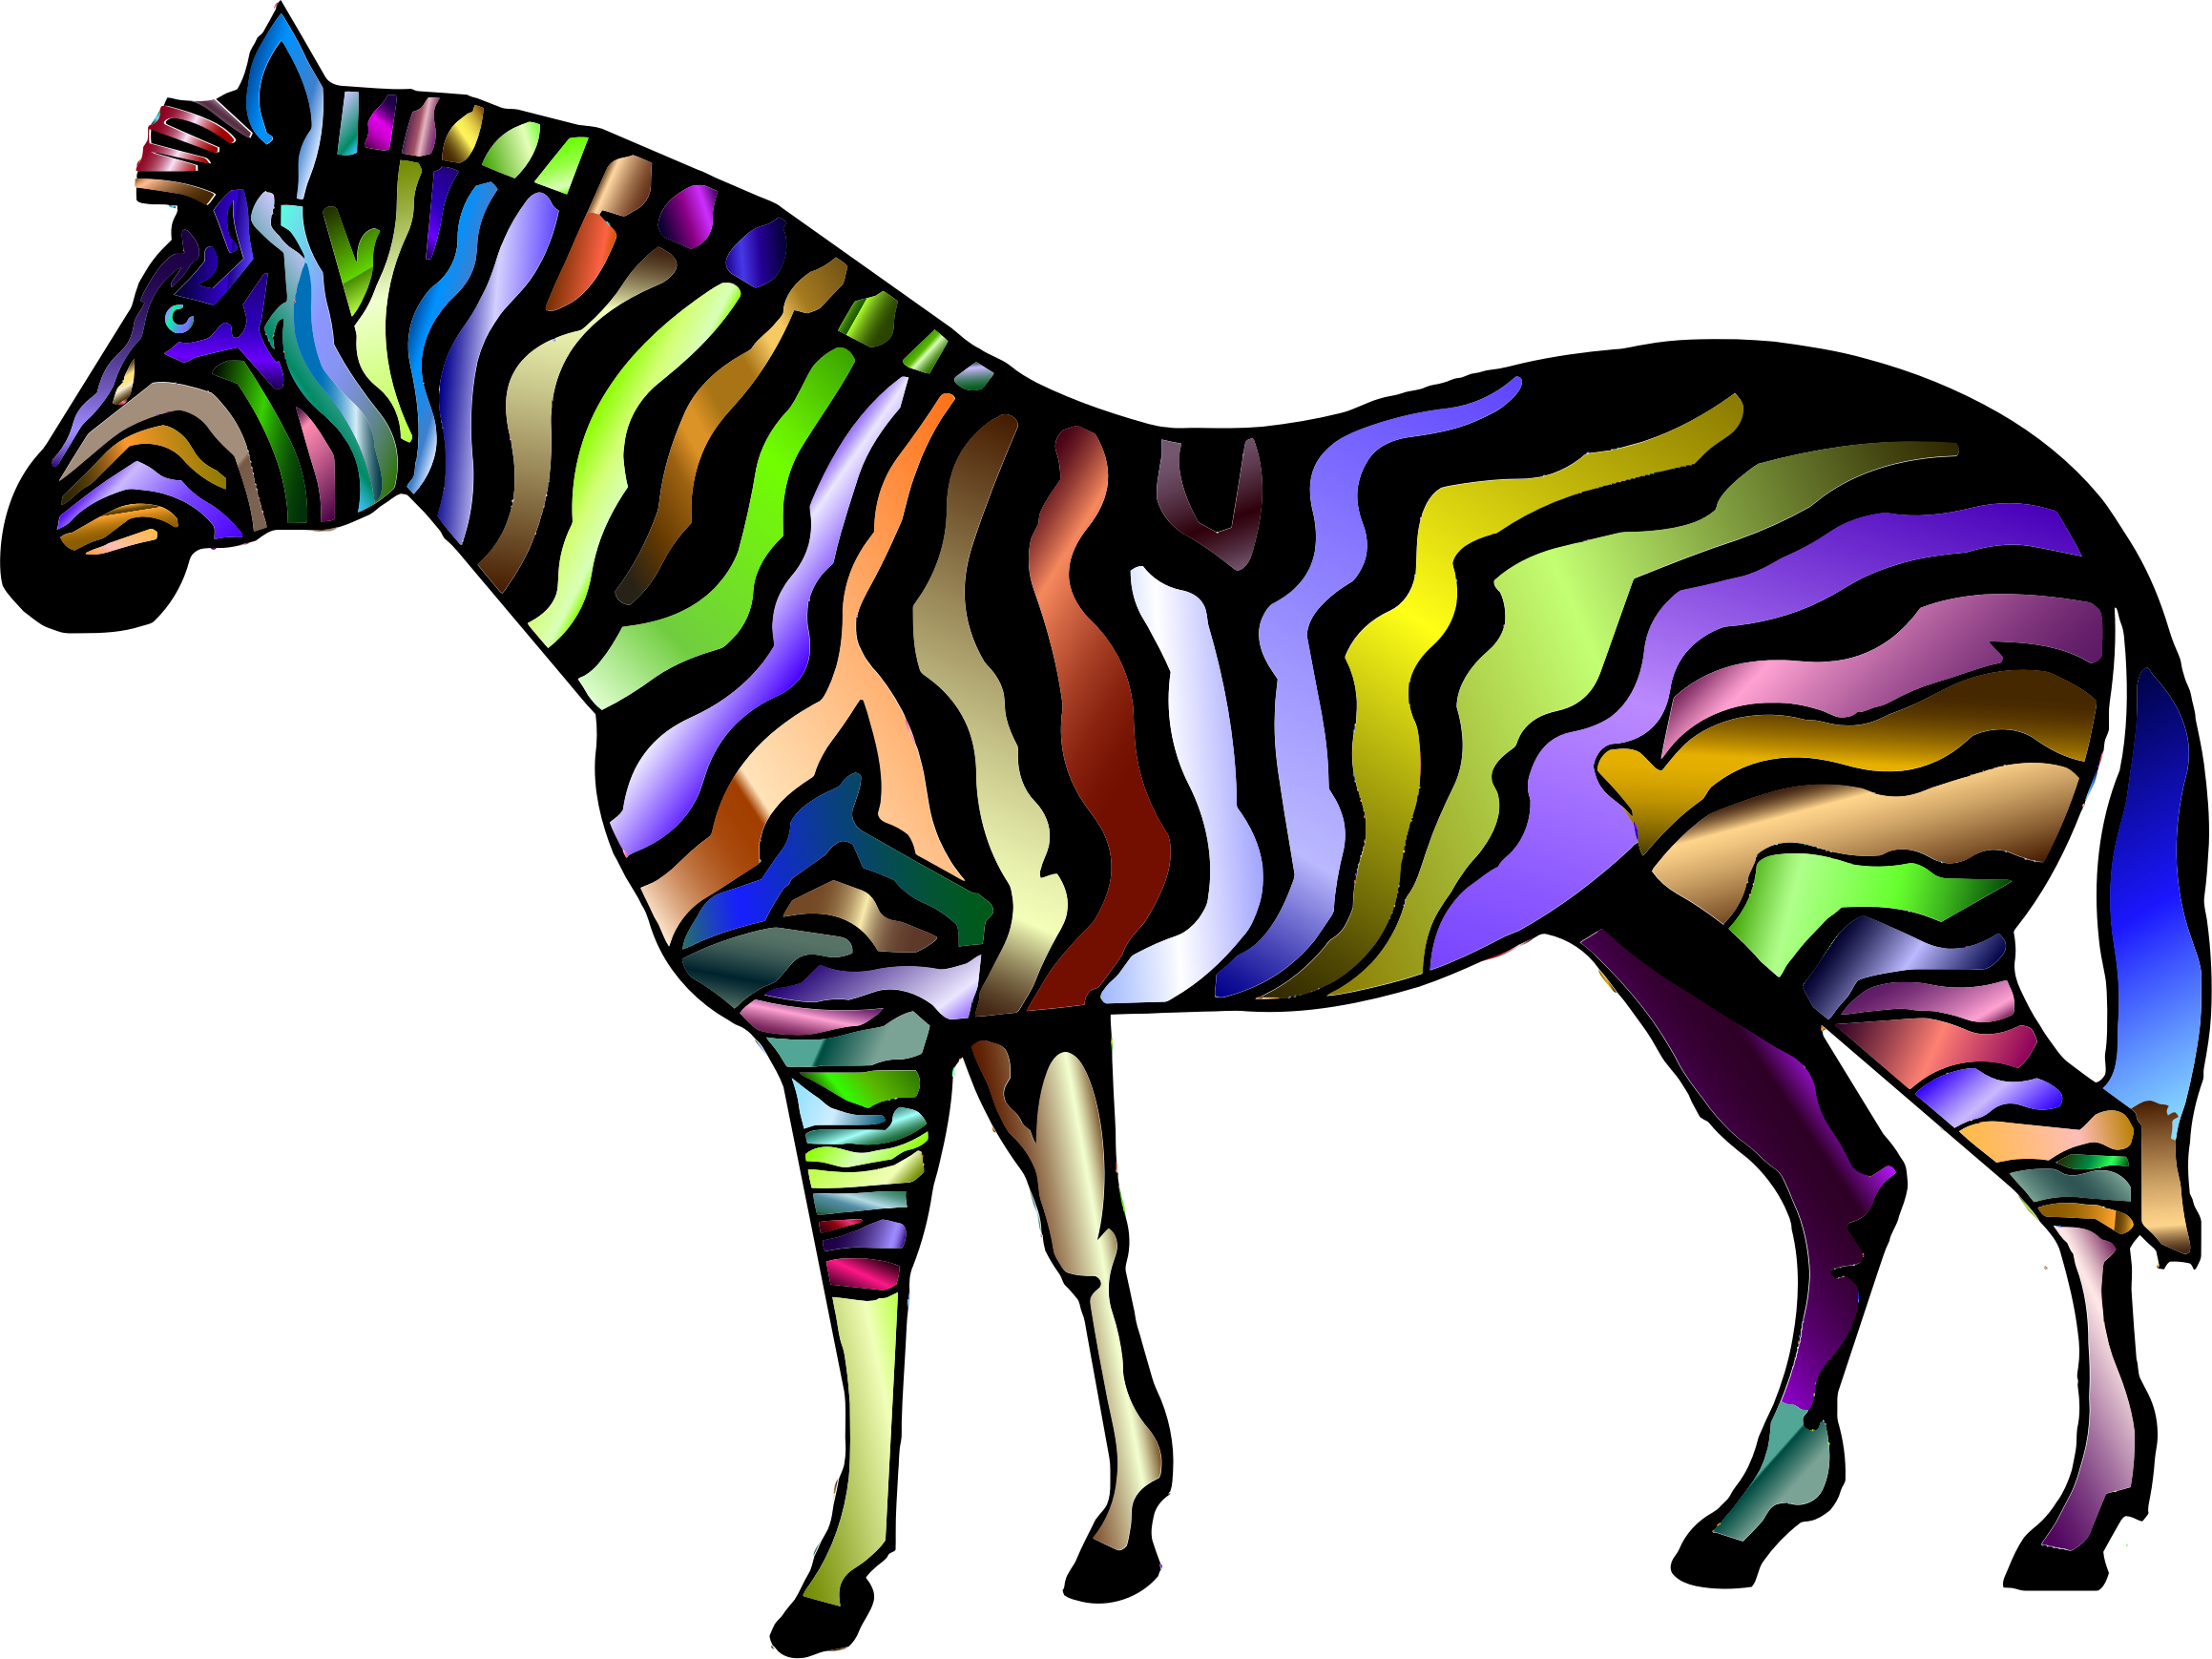 Zebra star clipart picture library library Zebra Print Clipart at GetDrawings.com   Free for personal use Zebra ... picture library library